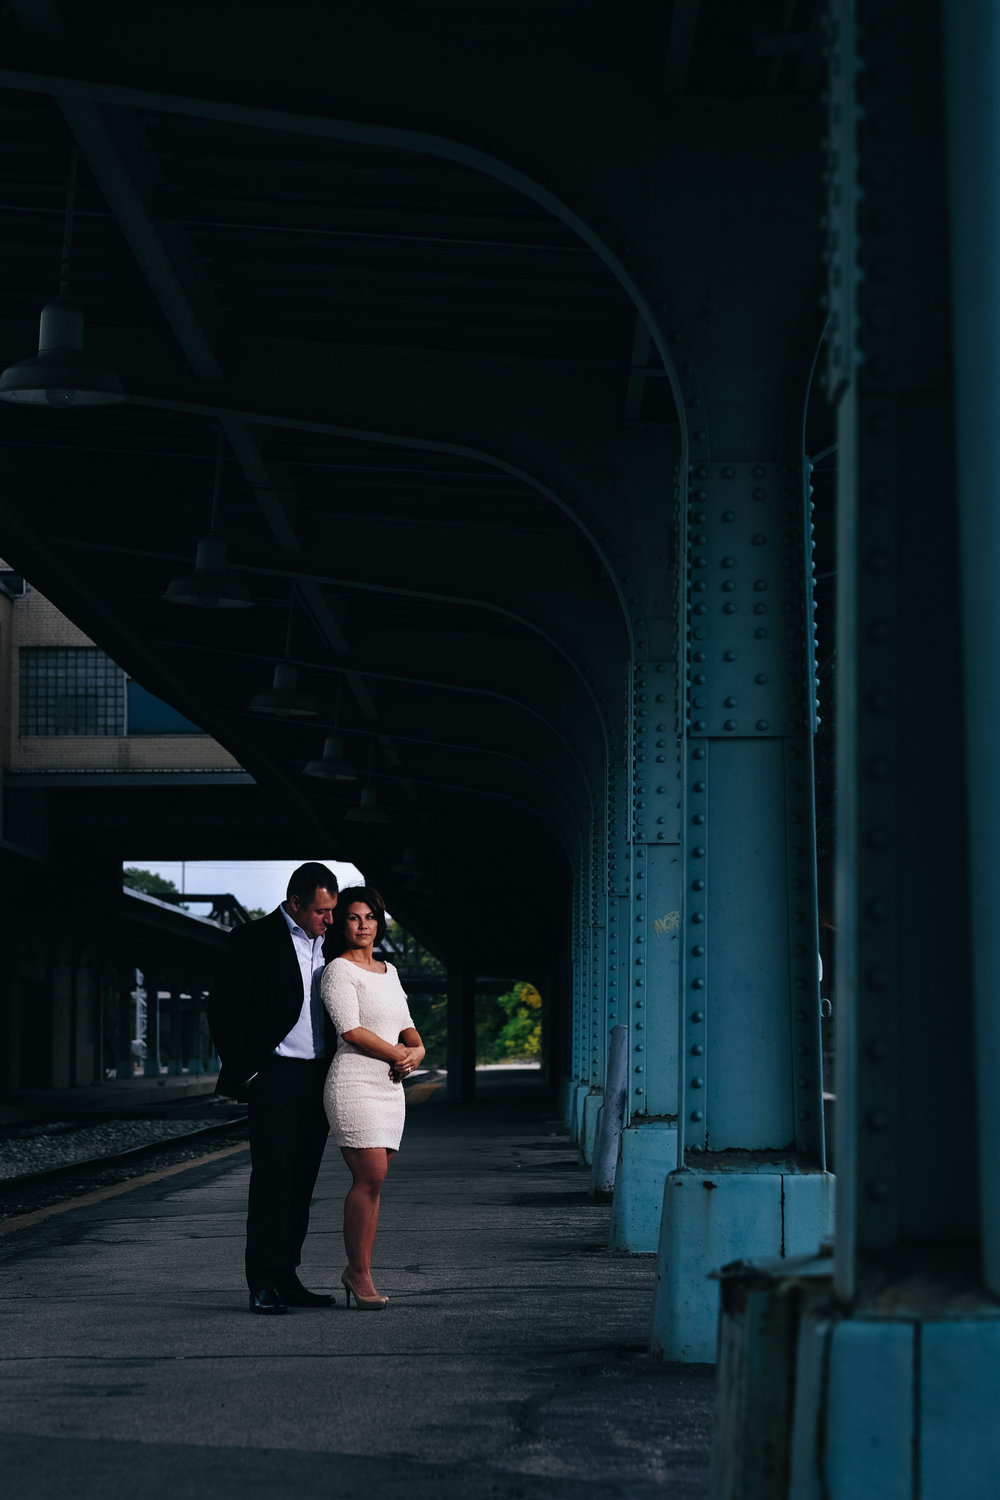 Toledo fall engagement photography at the Amtrak Station.